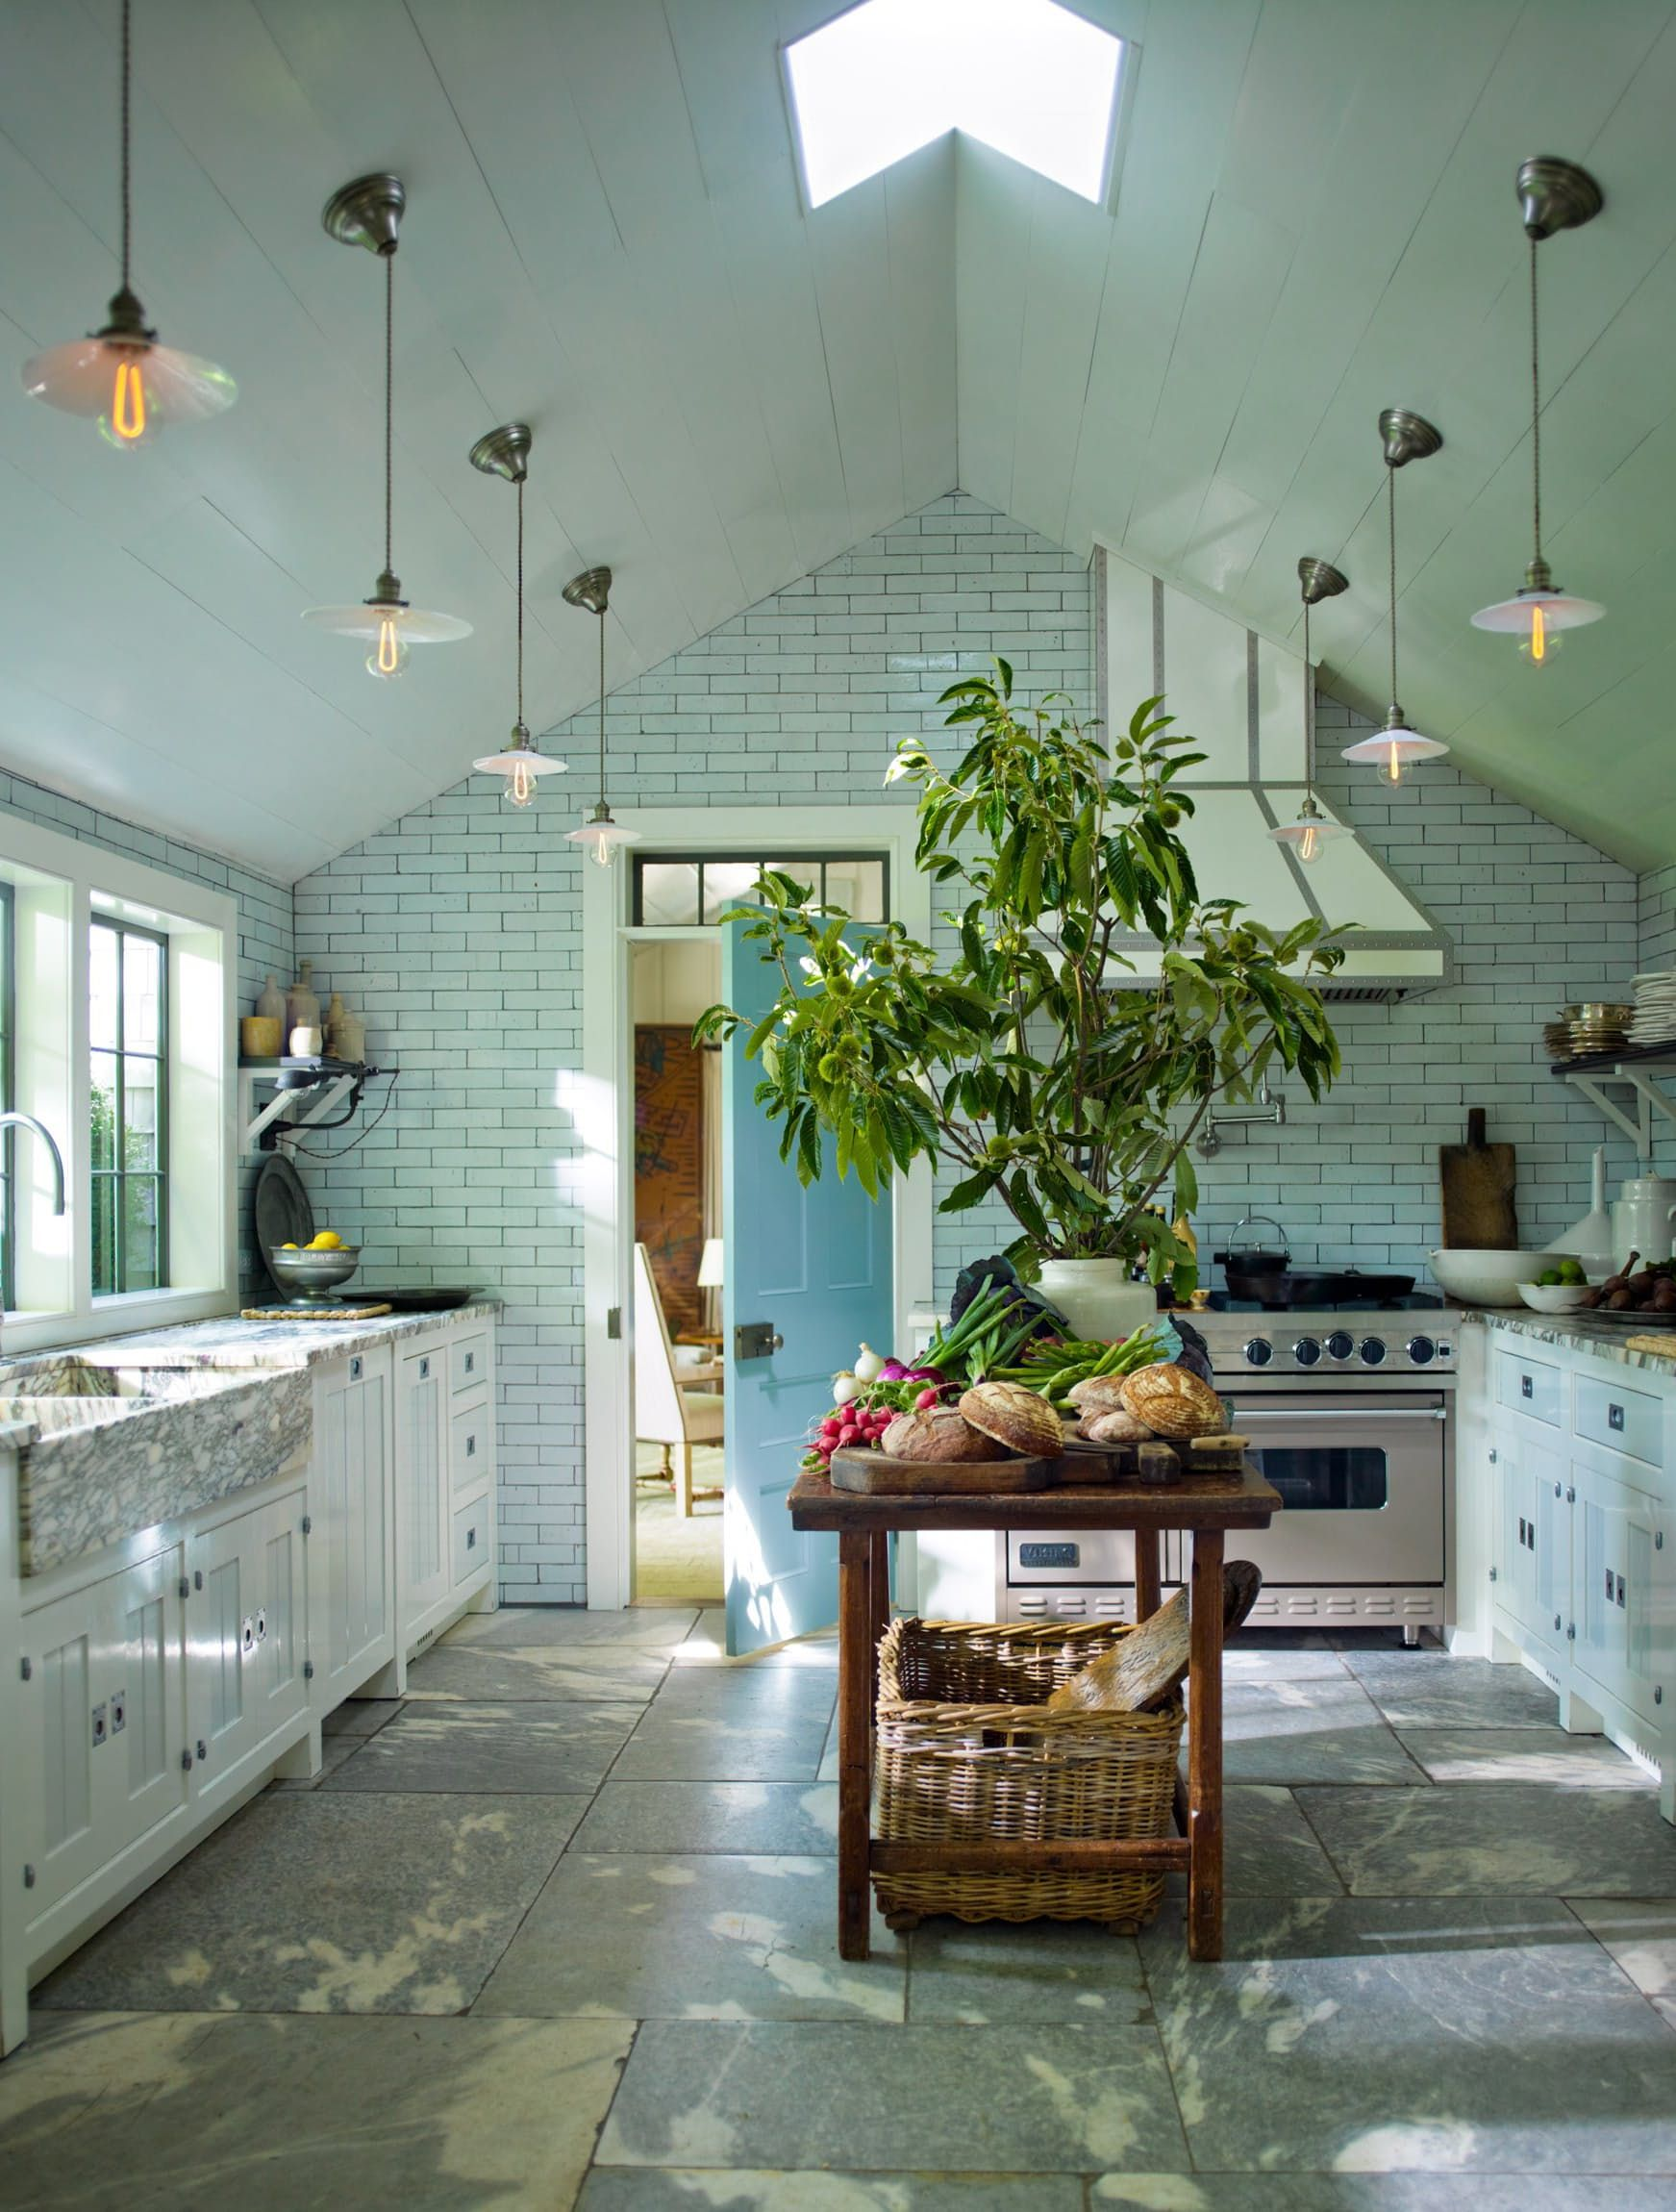 The World's Most Beautiful Kitchen Floors in 2020